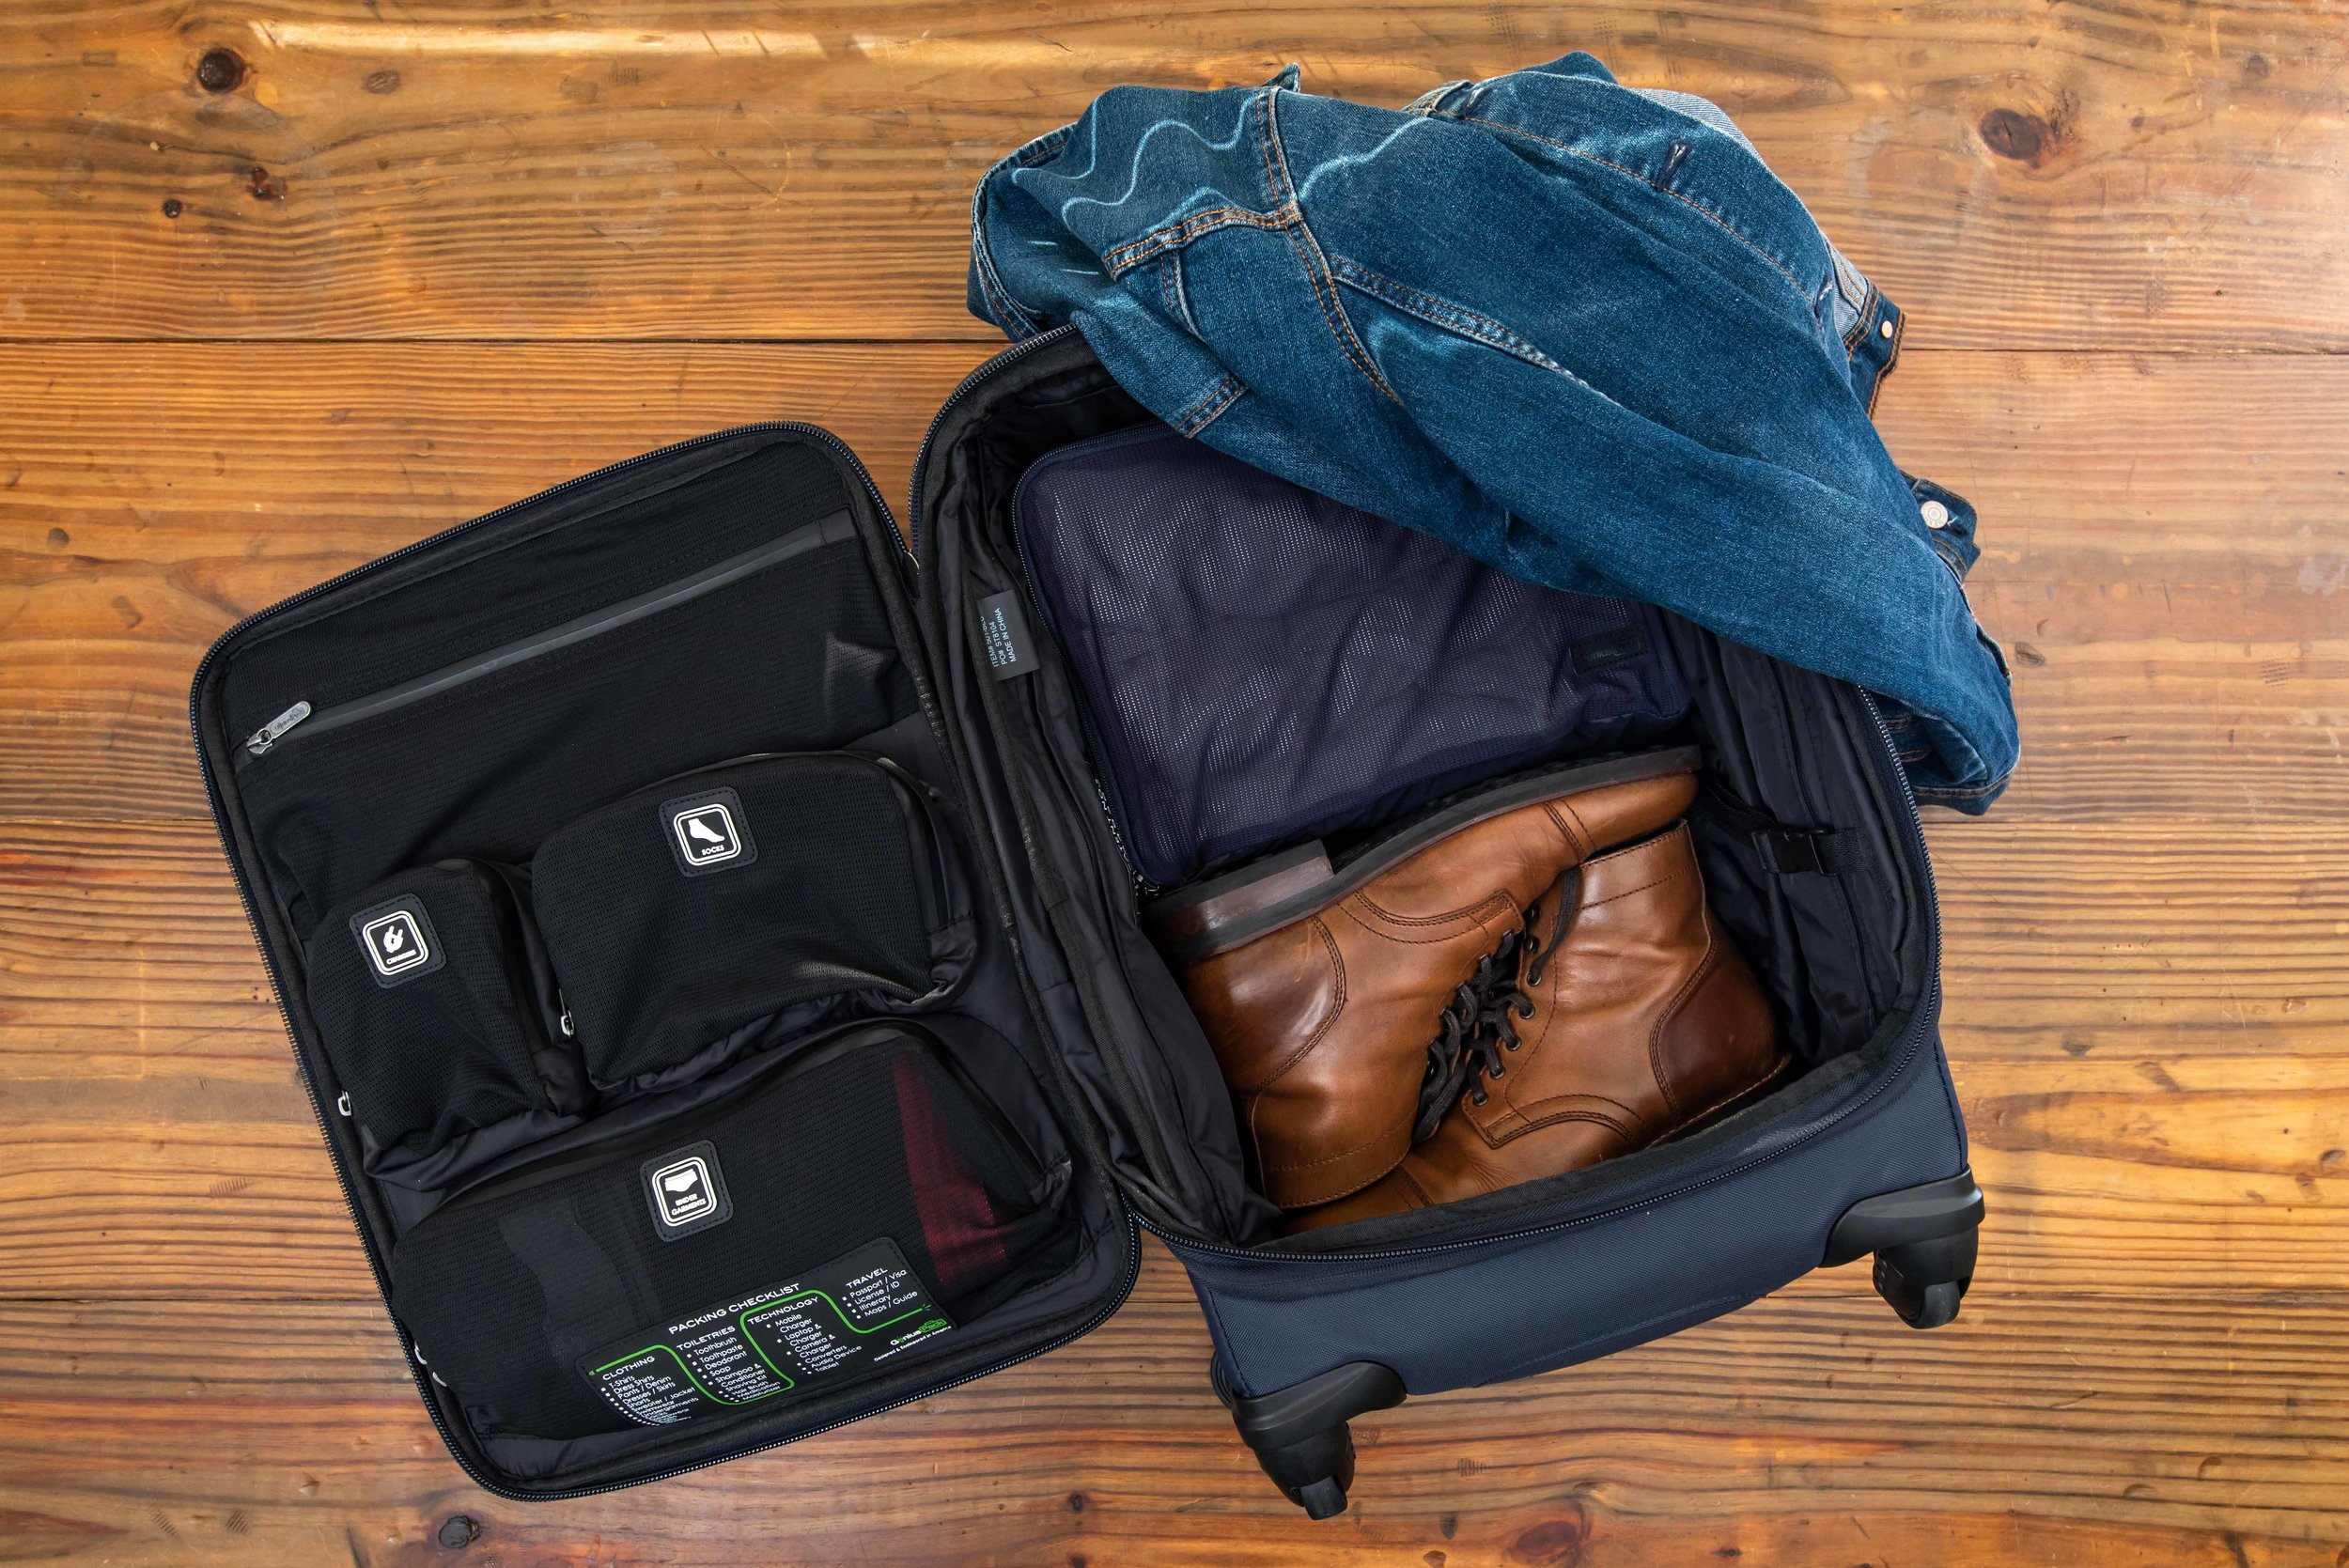 The G3 makes organizing your stuff easy.